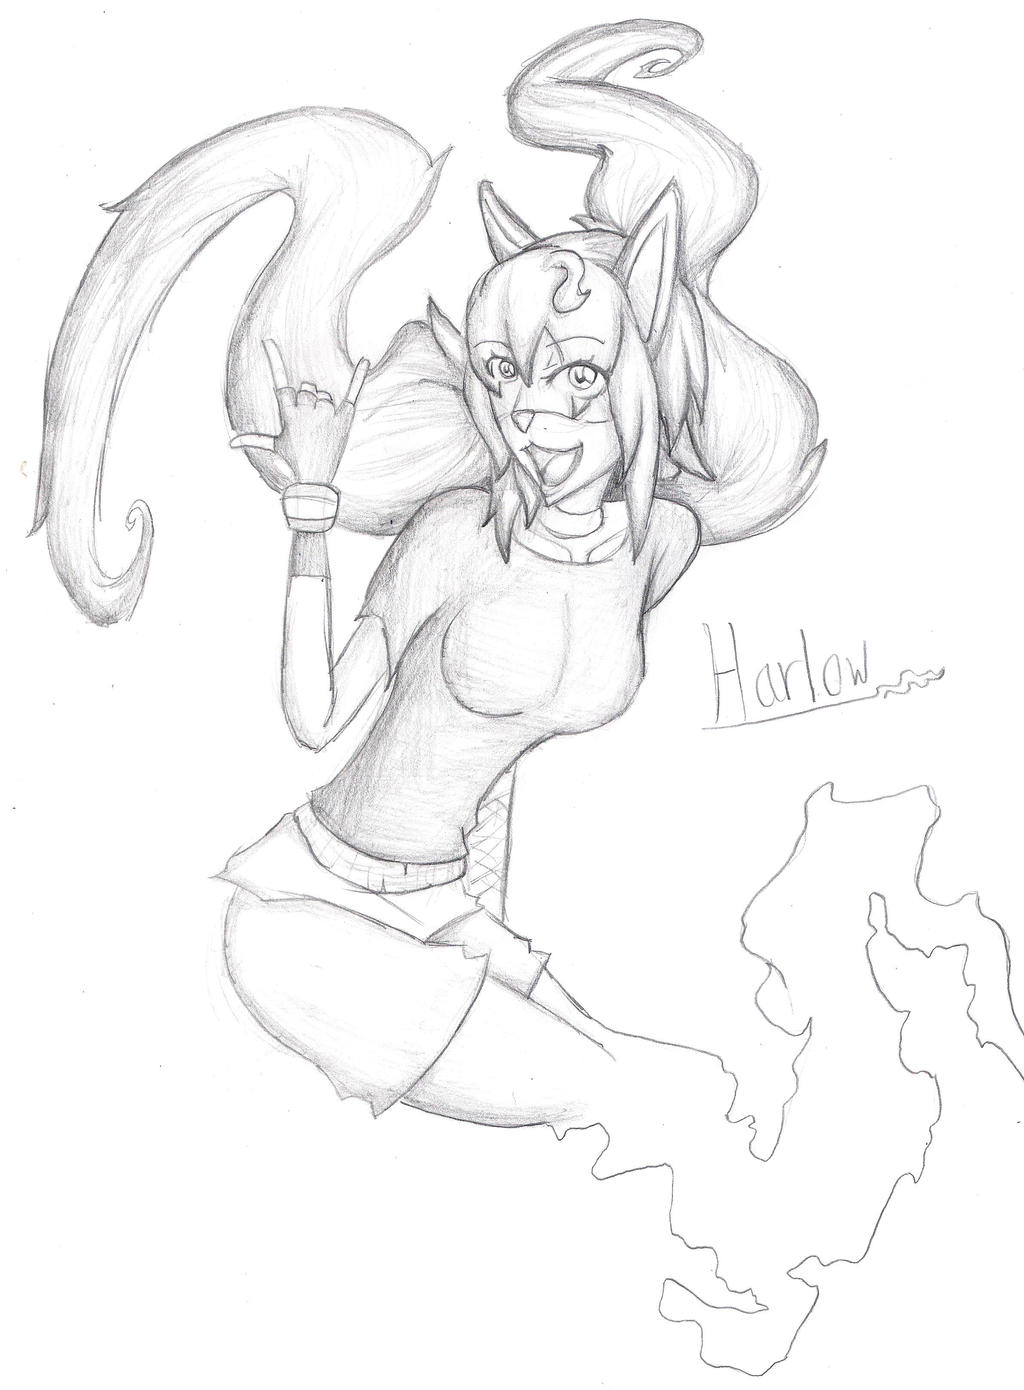 Contest Entry: Harlow The Ghost Cat by DotintheParadox